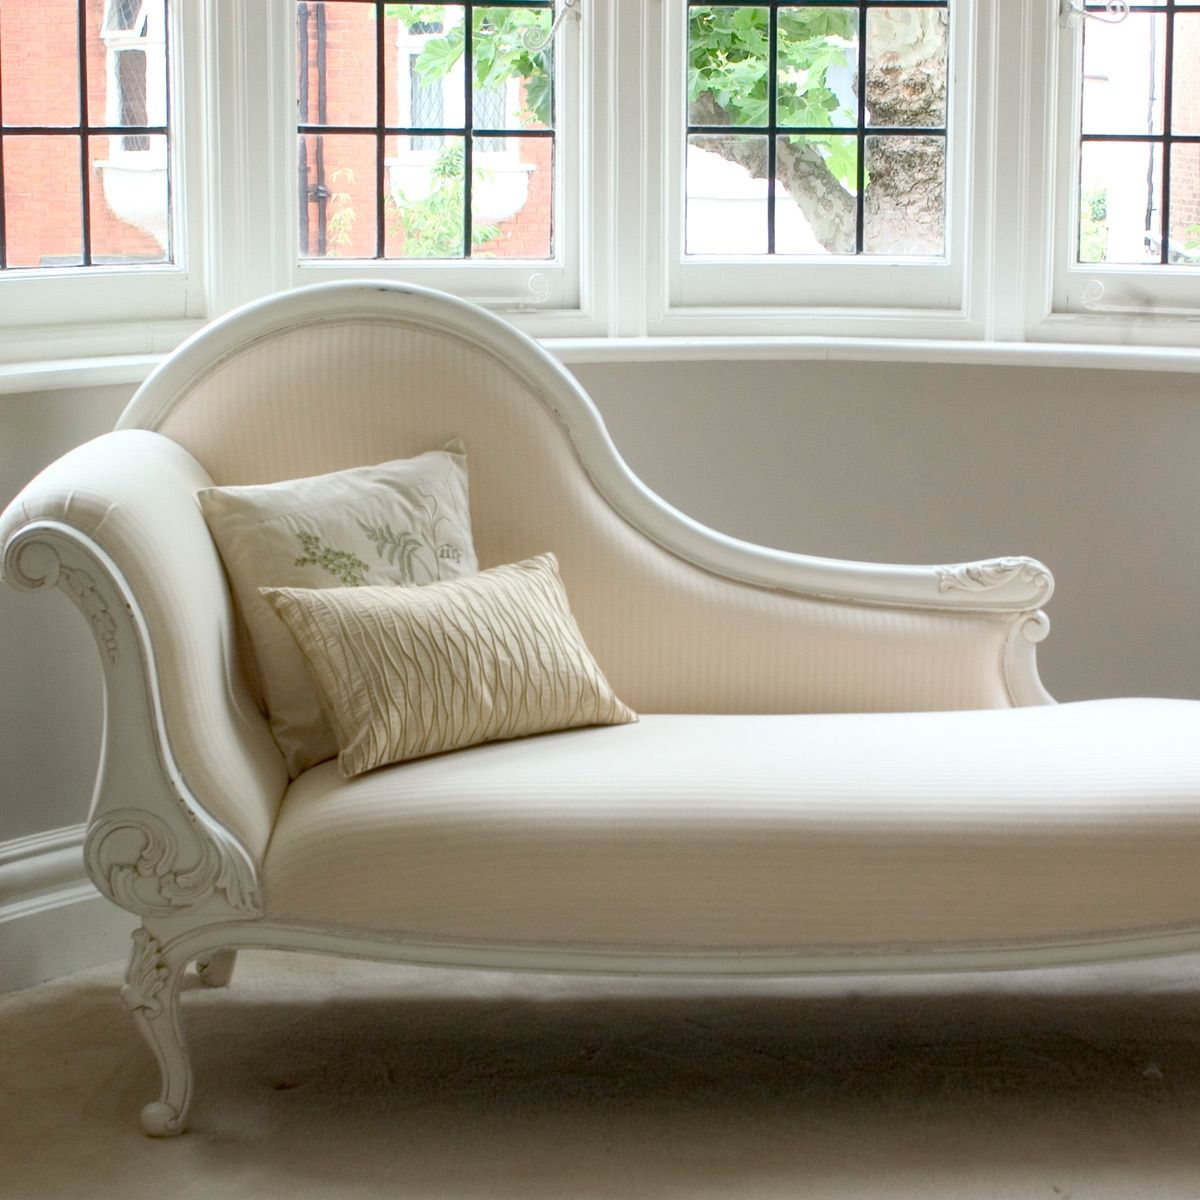 Classical White Chaise Longue   Sweetpea and Willow : window chaise lounge - Sectionals, Sofas & Couches